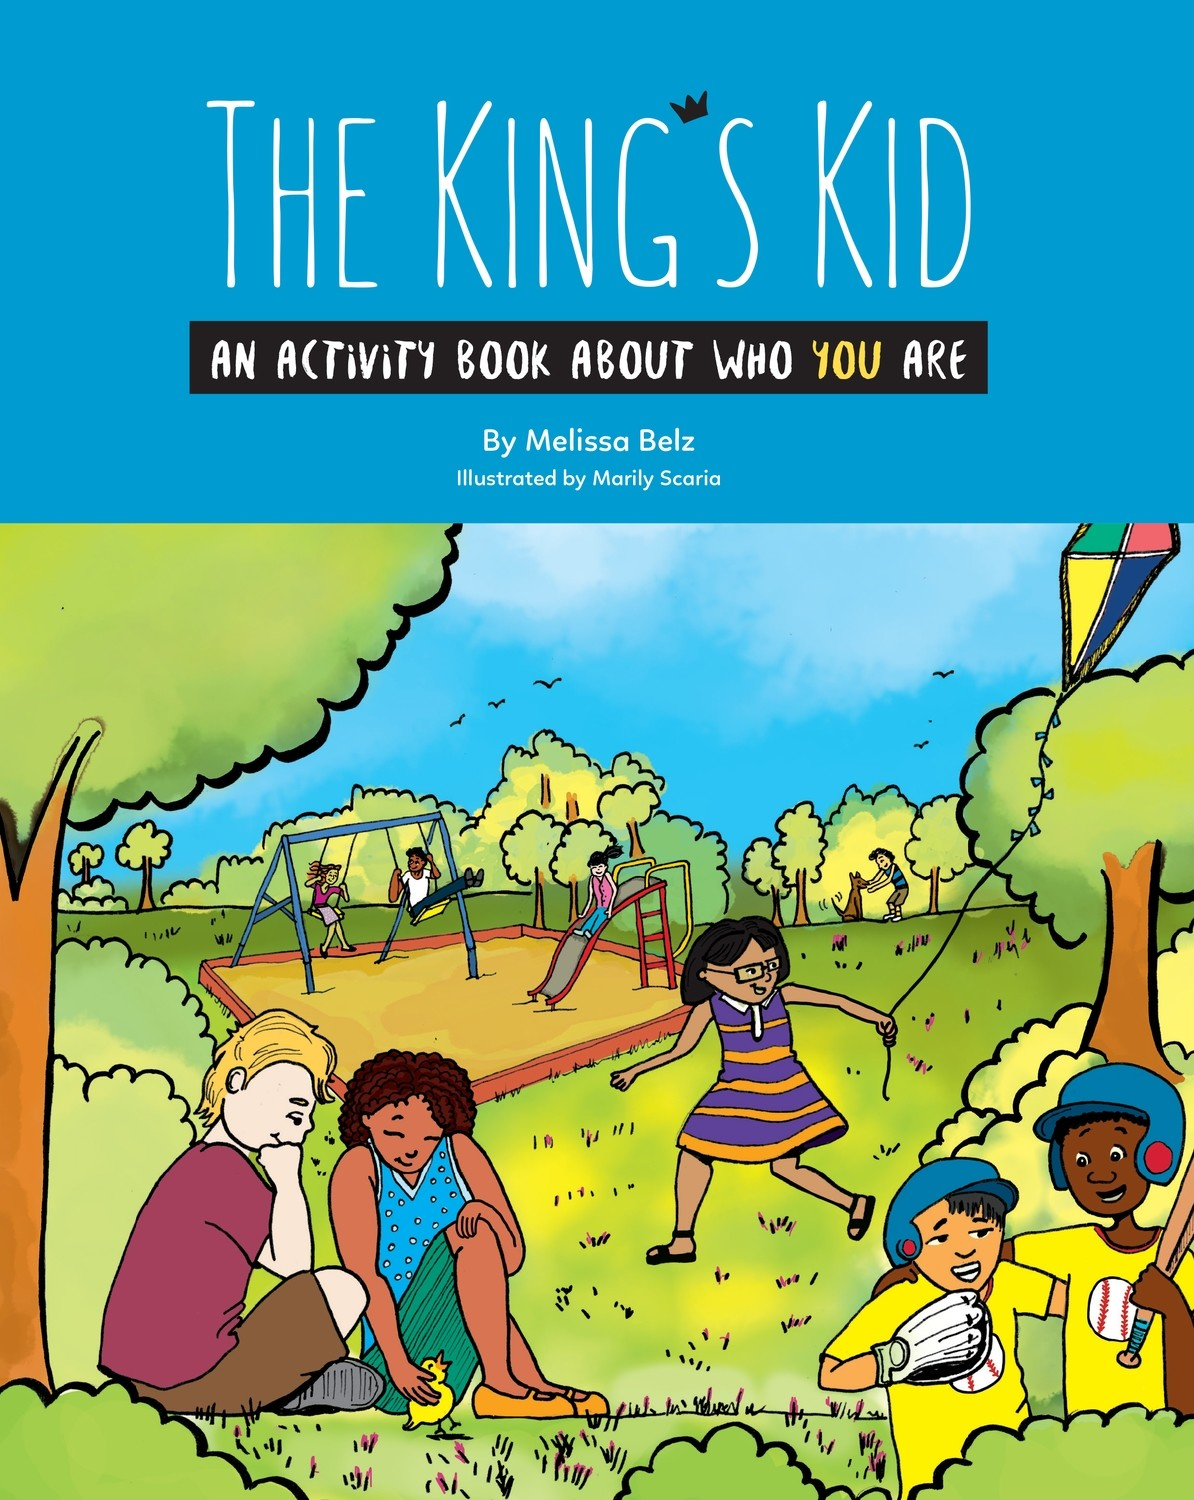 The King's Kid